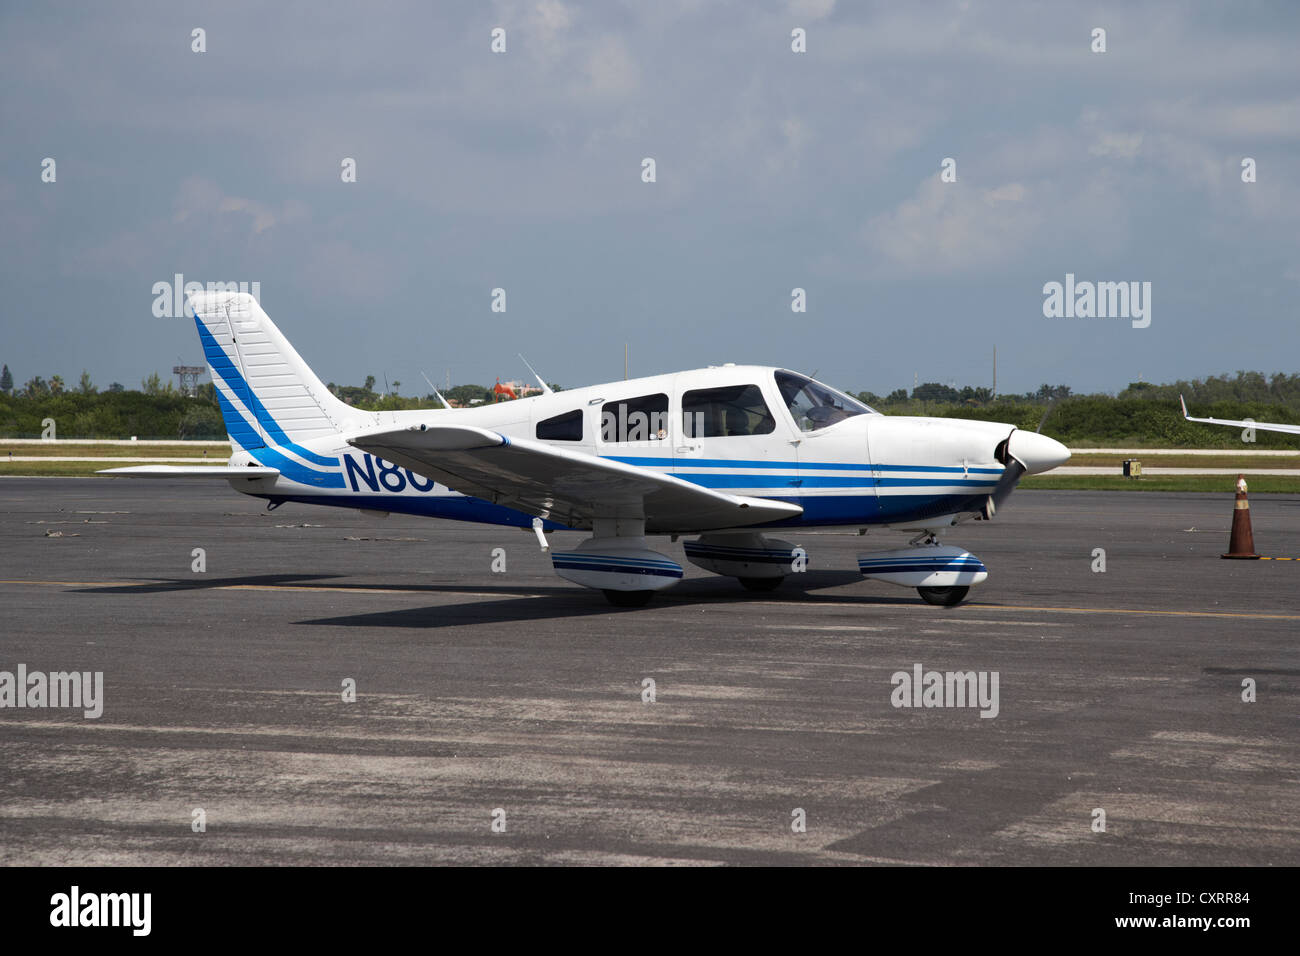 small single engined private aircraft taxis in key west international airport florida keys usa - Stock Image